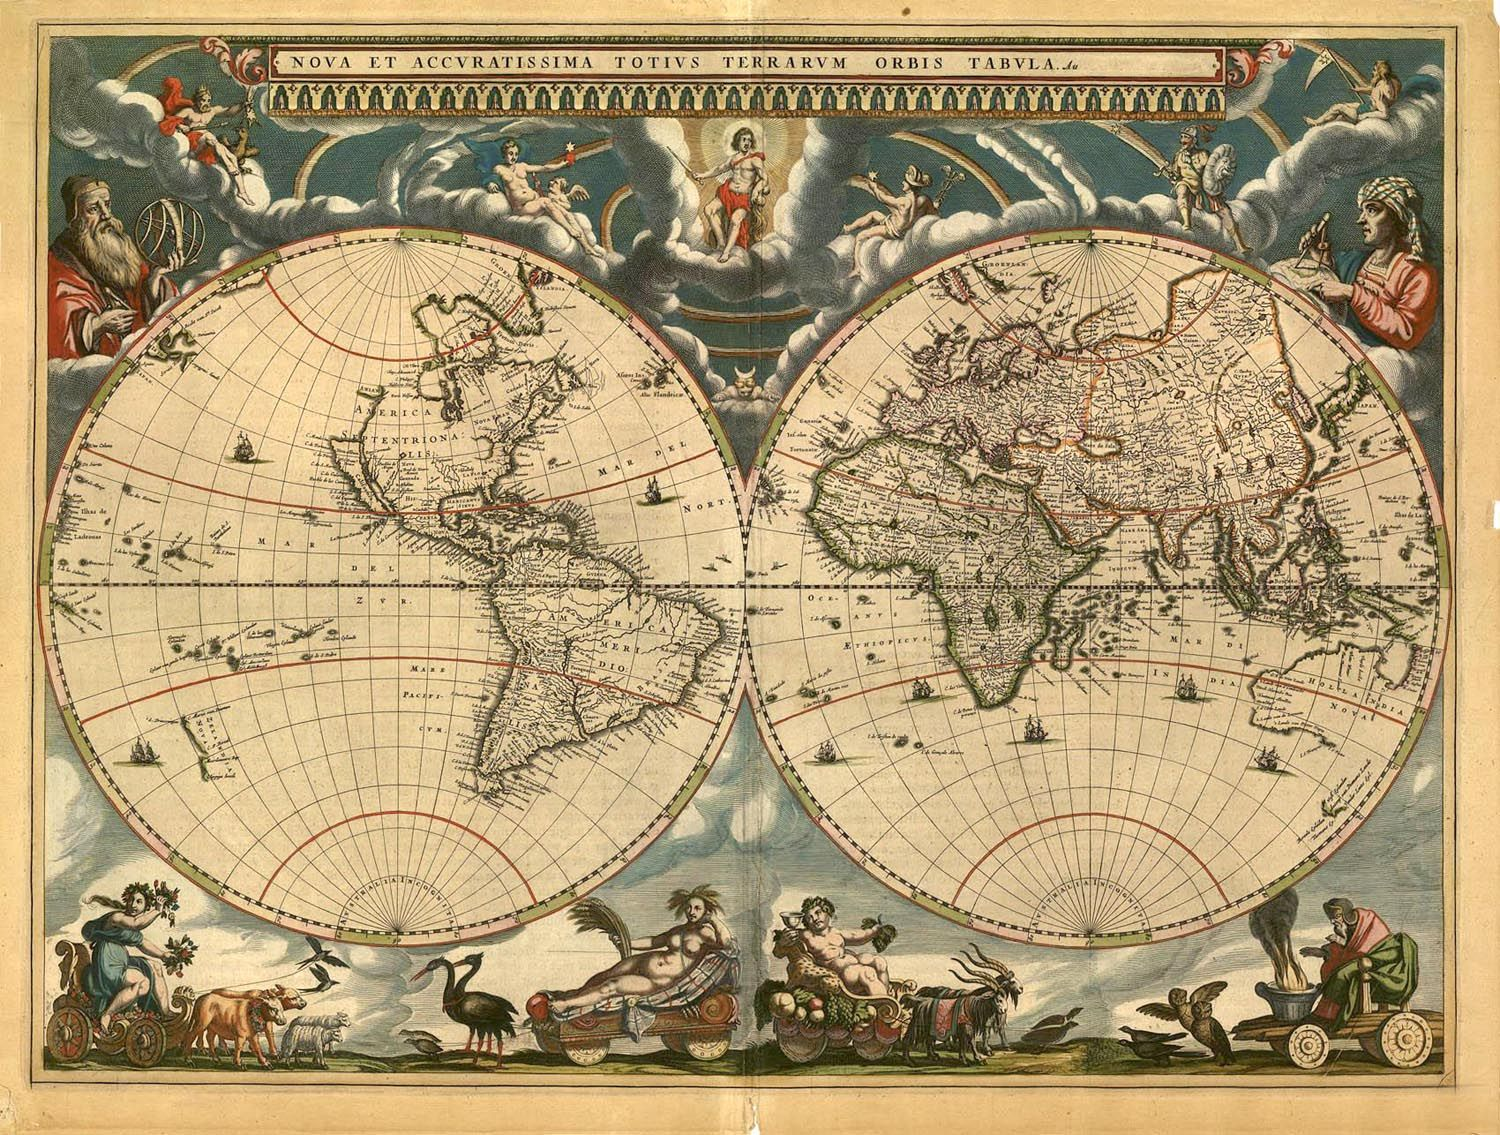 I love maps and i want to go everywhere travel 3 pinterest gallery direct fine art prints nova et accuratissima totius terrarum orbis tabula new and accurate map of the world 1664 by jan blaeu gumiabroncs Gallery